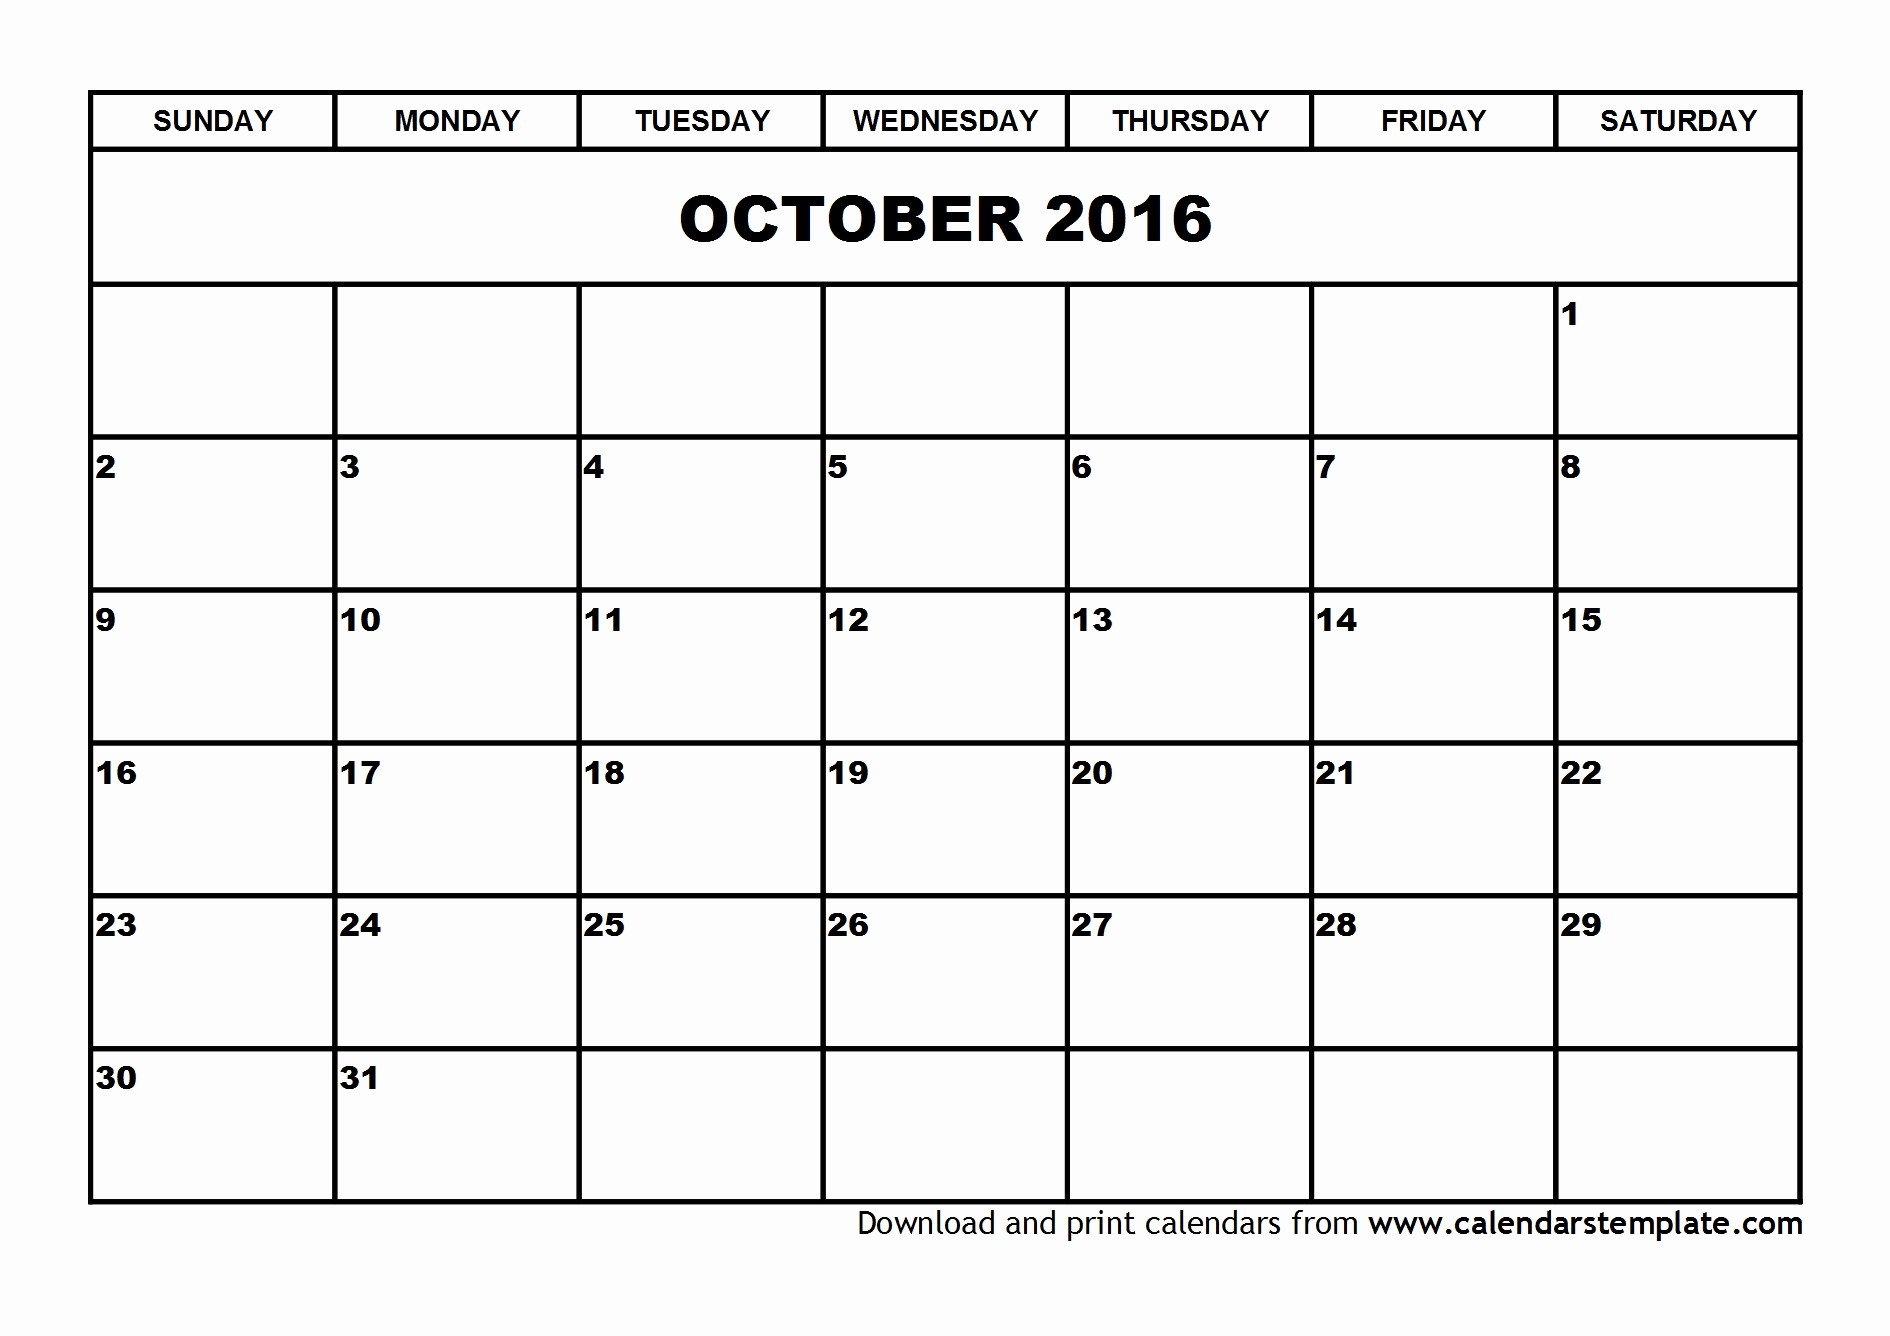 Free Printable Calendars 2016 Templates Awesome October 2016 Calendar Template